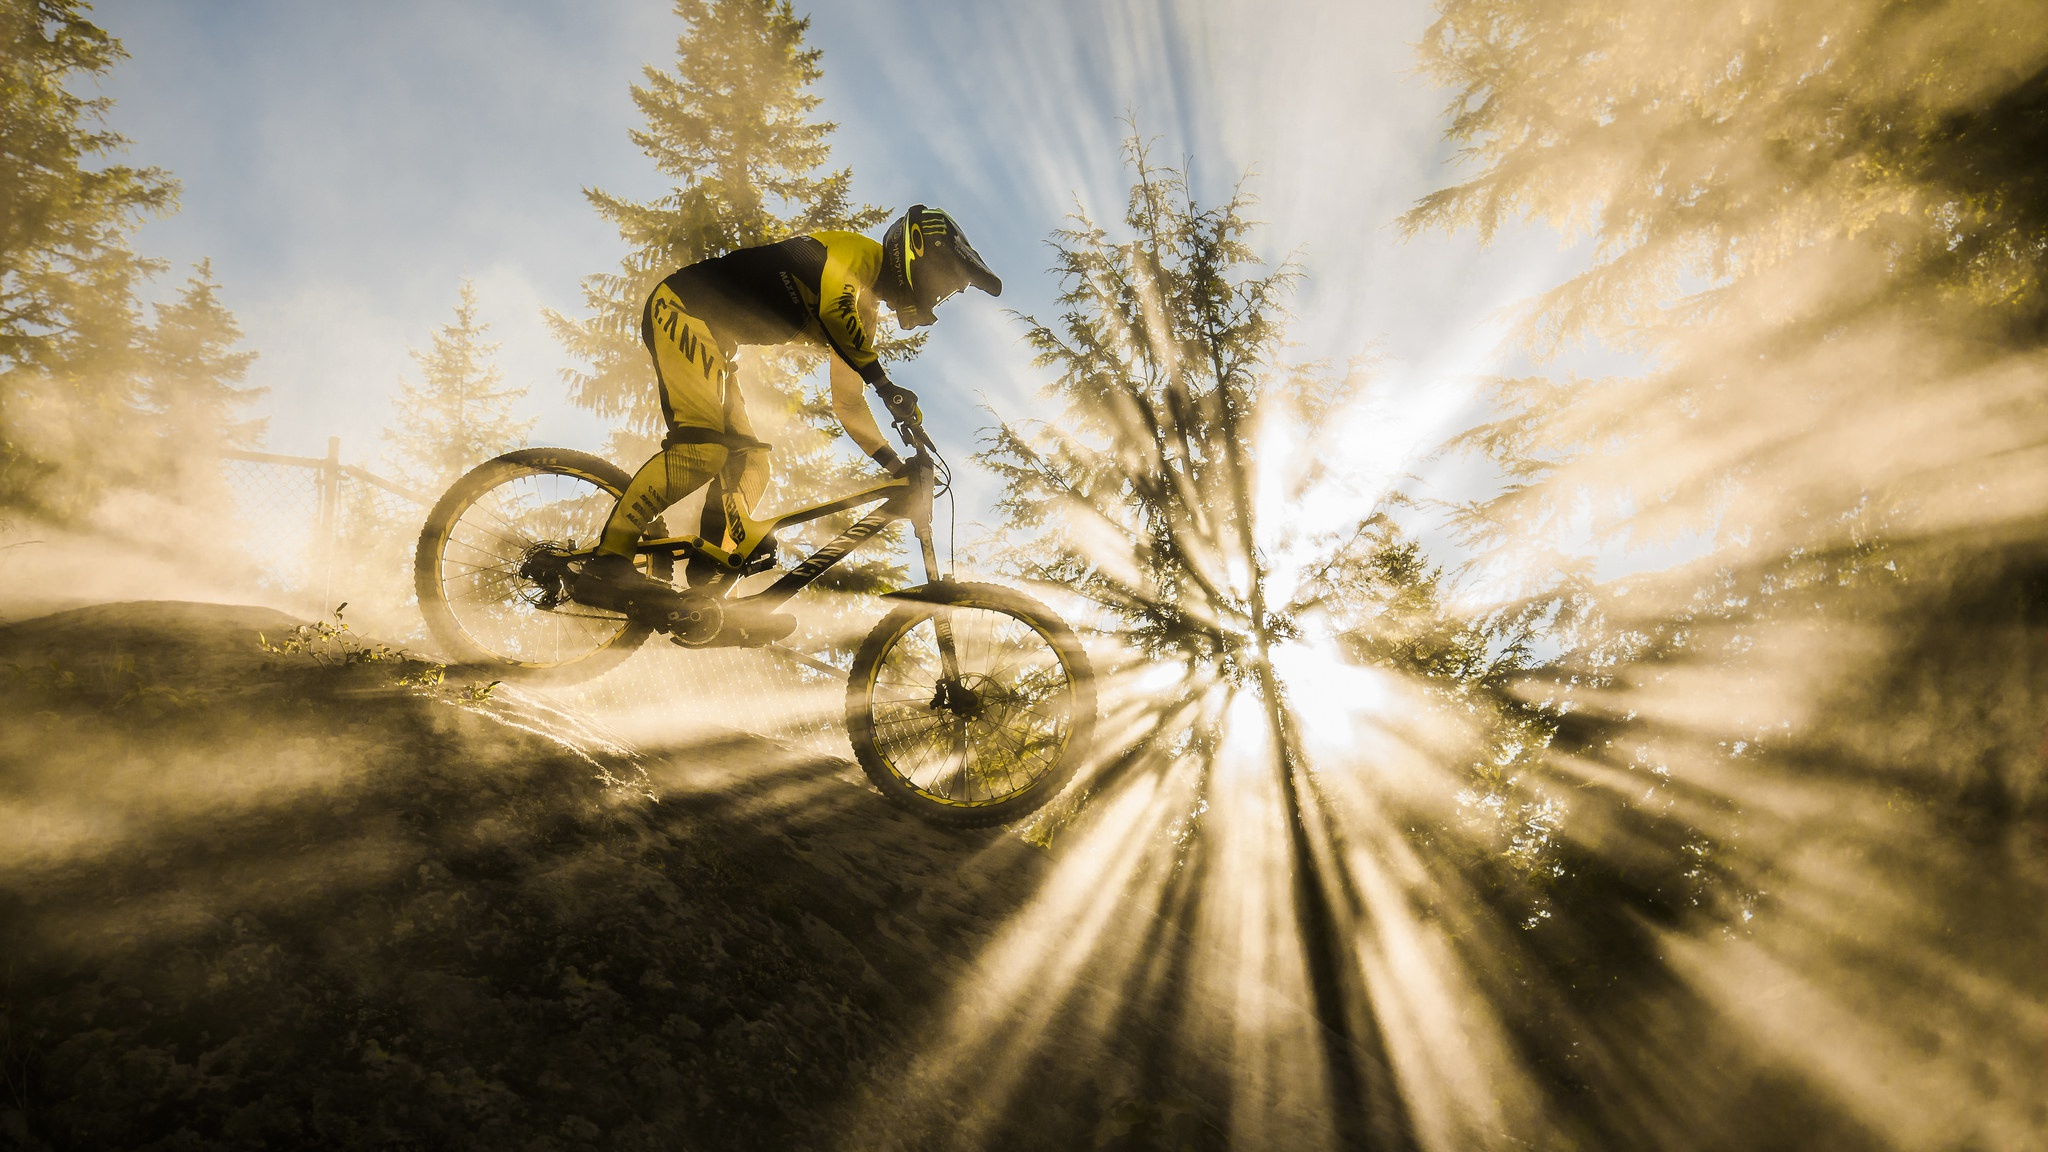 Mountain Bike Sunbeam Hd Others 4k Wallpapers Images